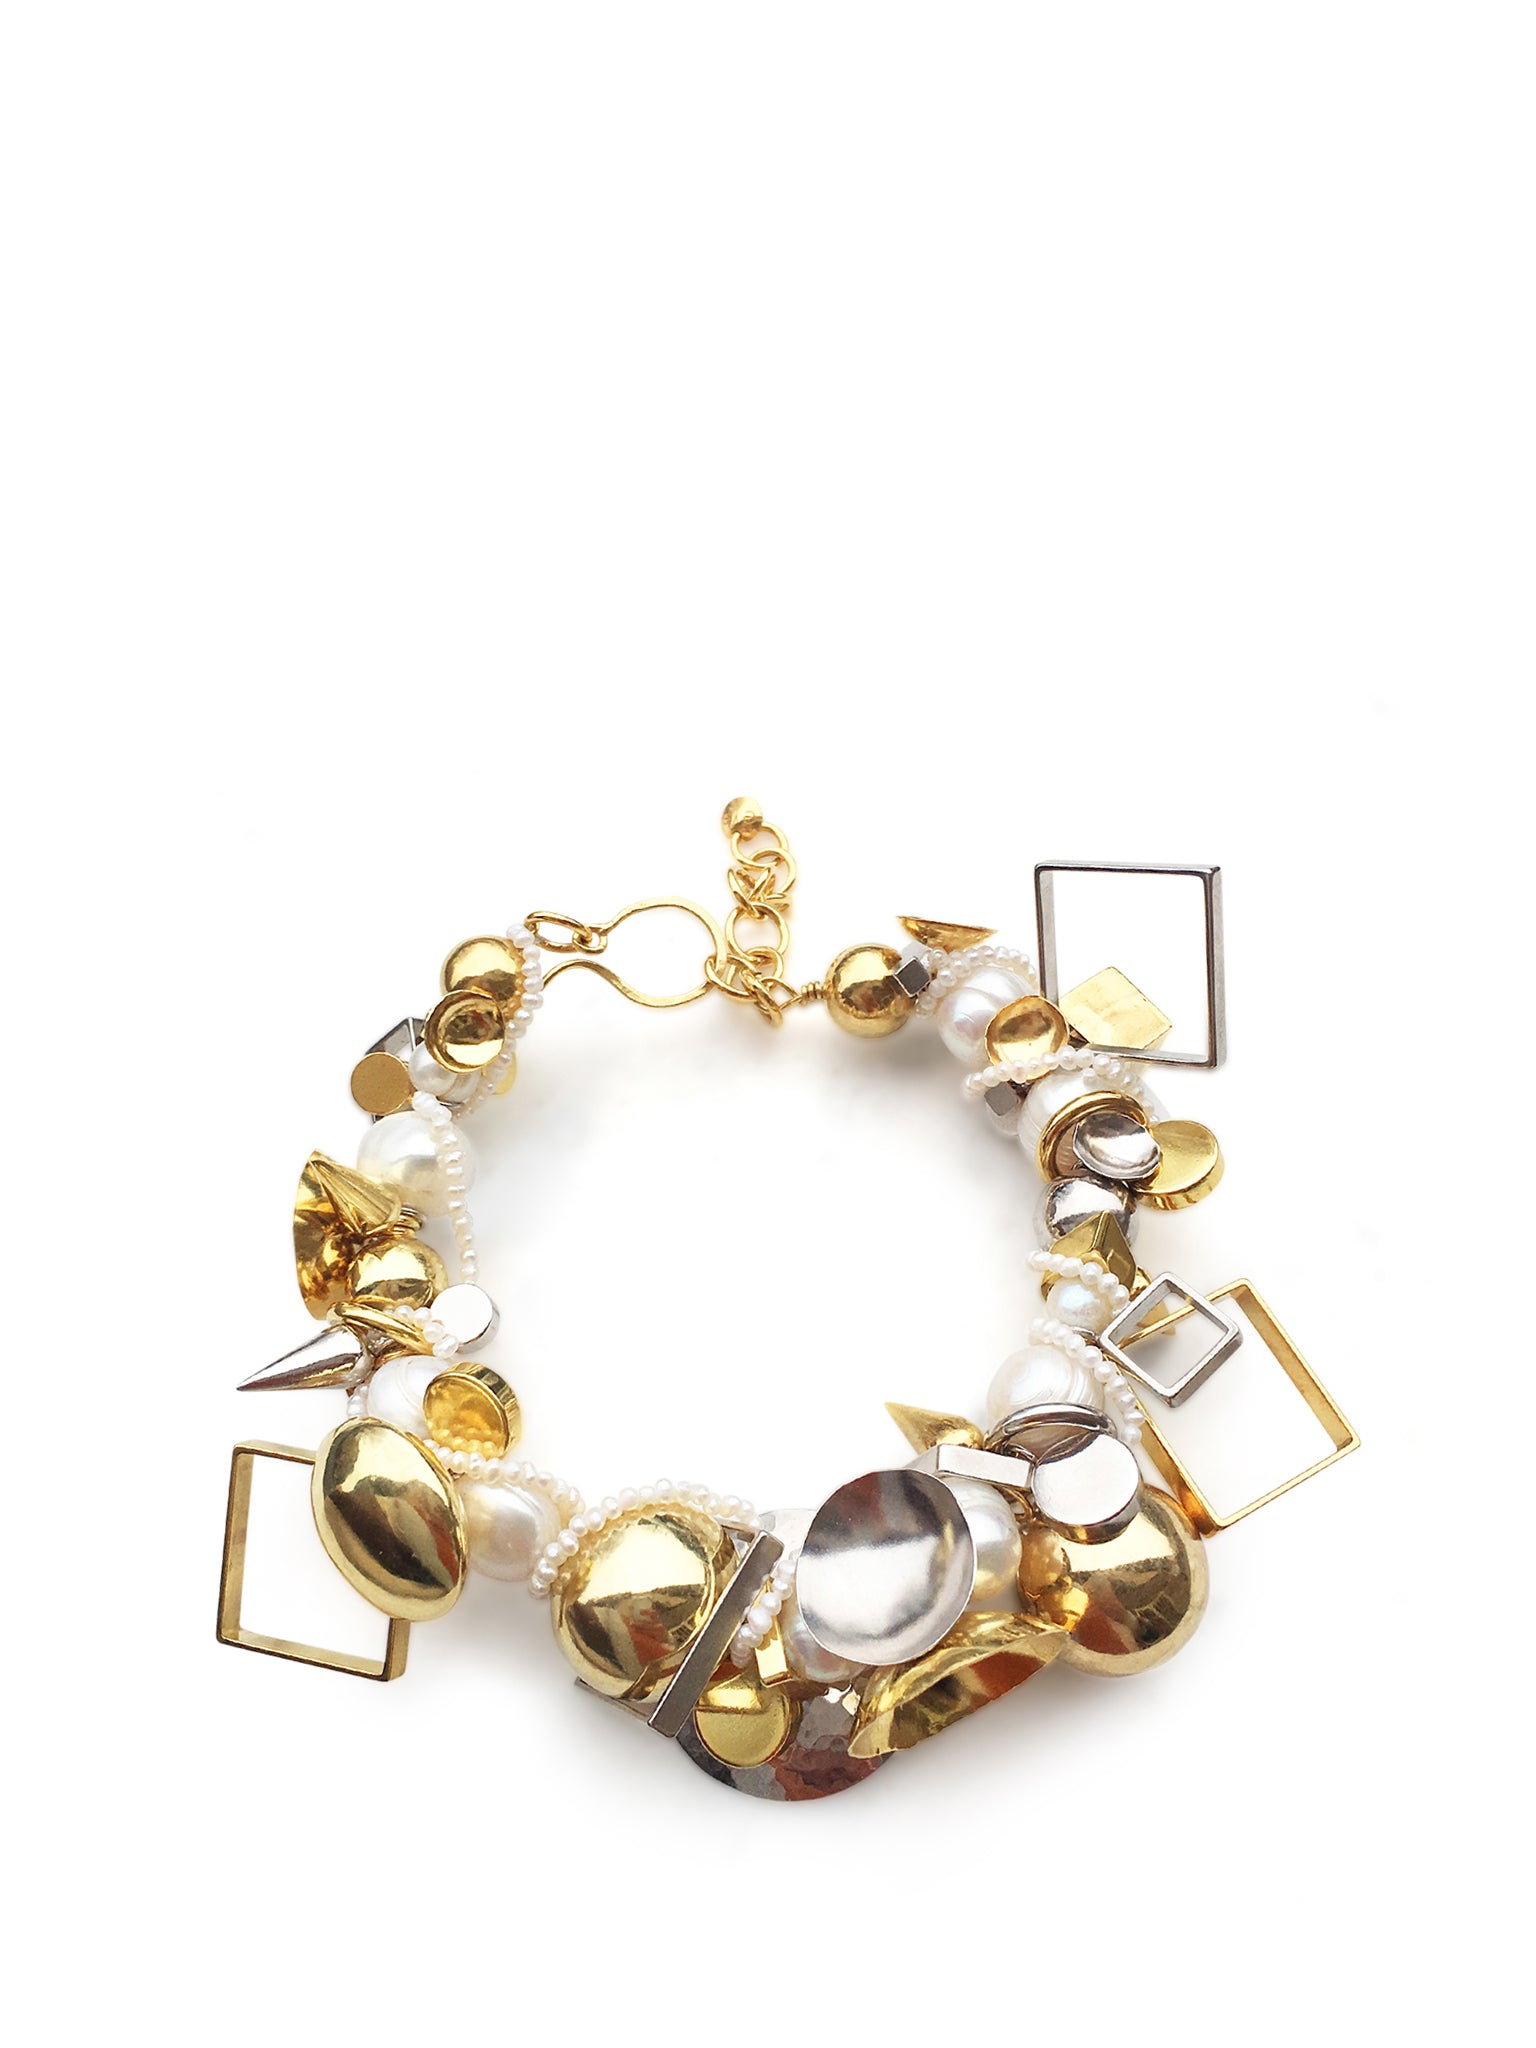 ECHO CHIC - Eternity bracelet